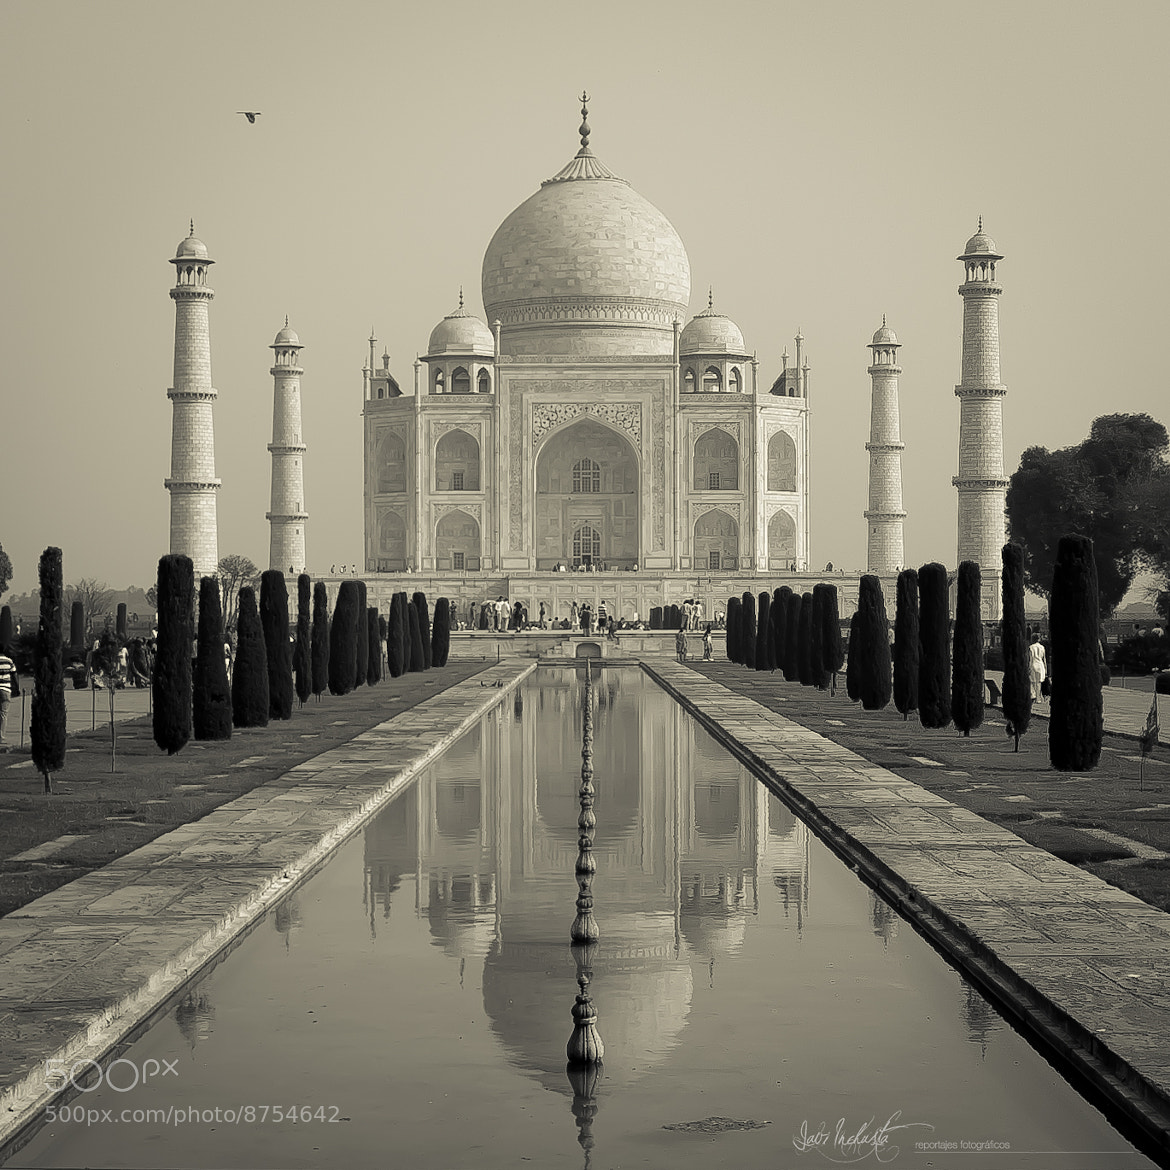 Photograph Taj Mahal by Javi Inchusta on 500px